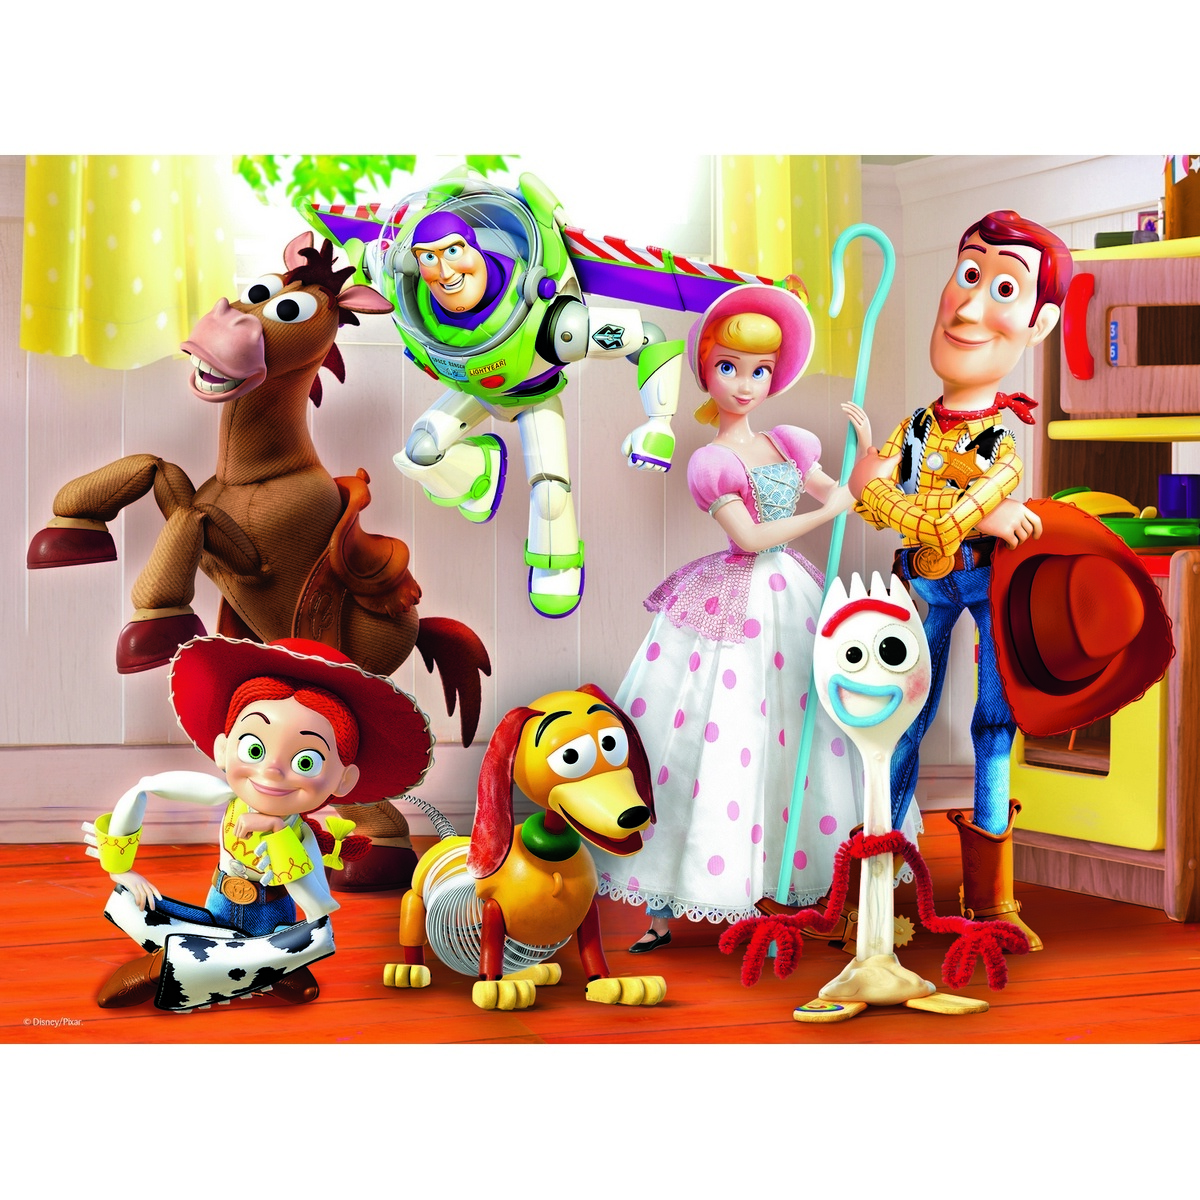 Trefl Puzzle Toy Story 4, 30 piese imagine 2021 e4home.ro